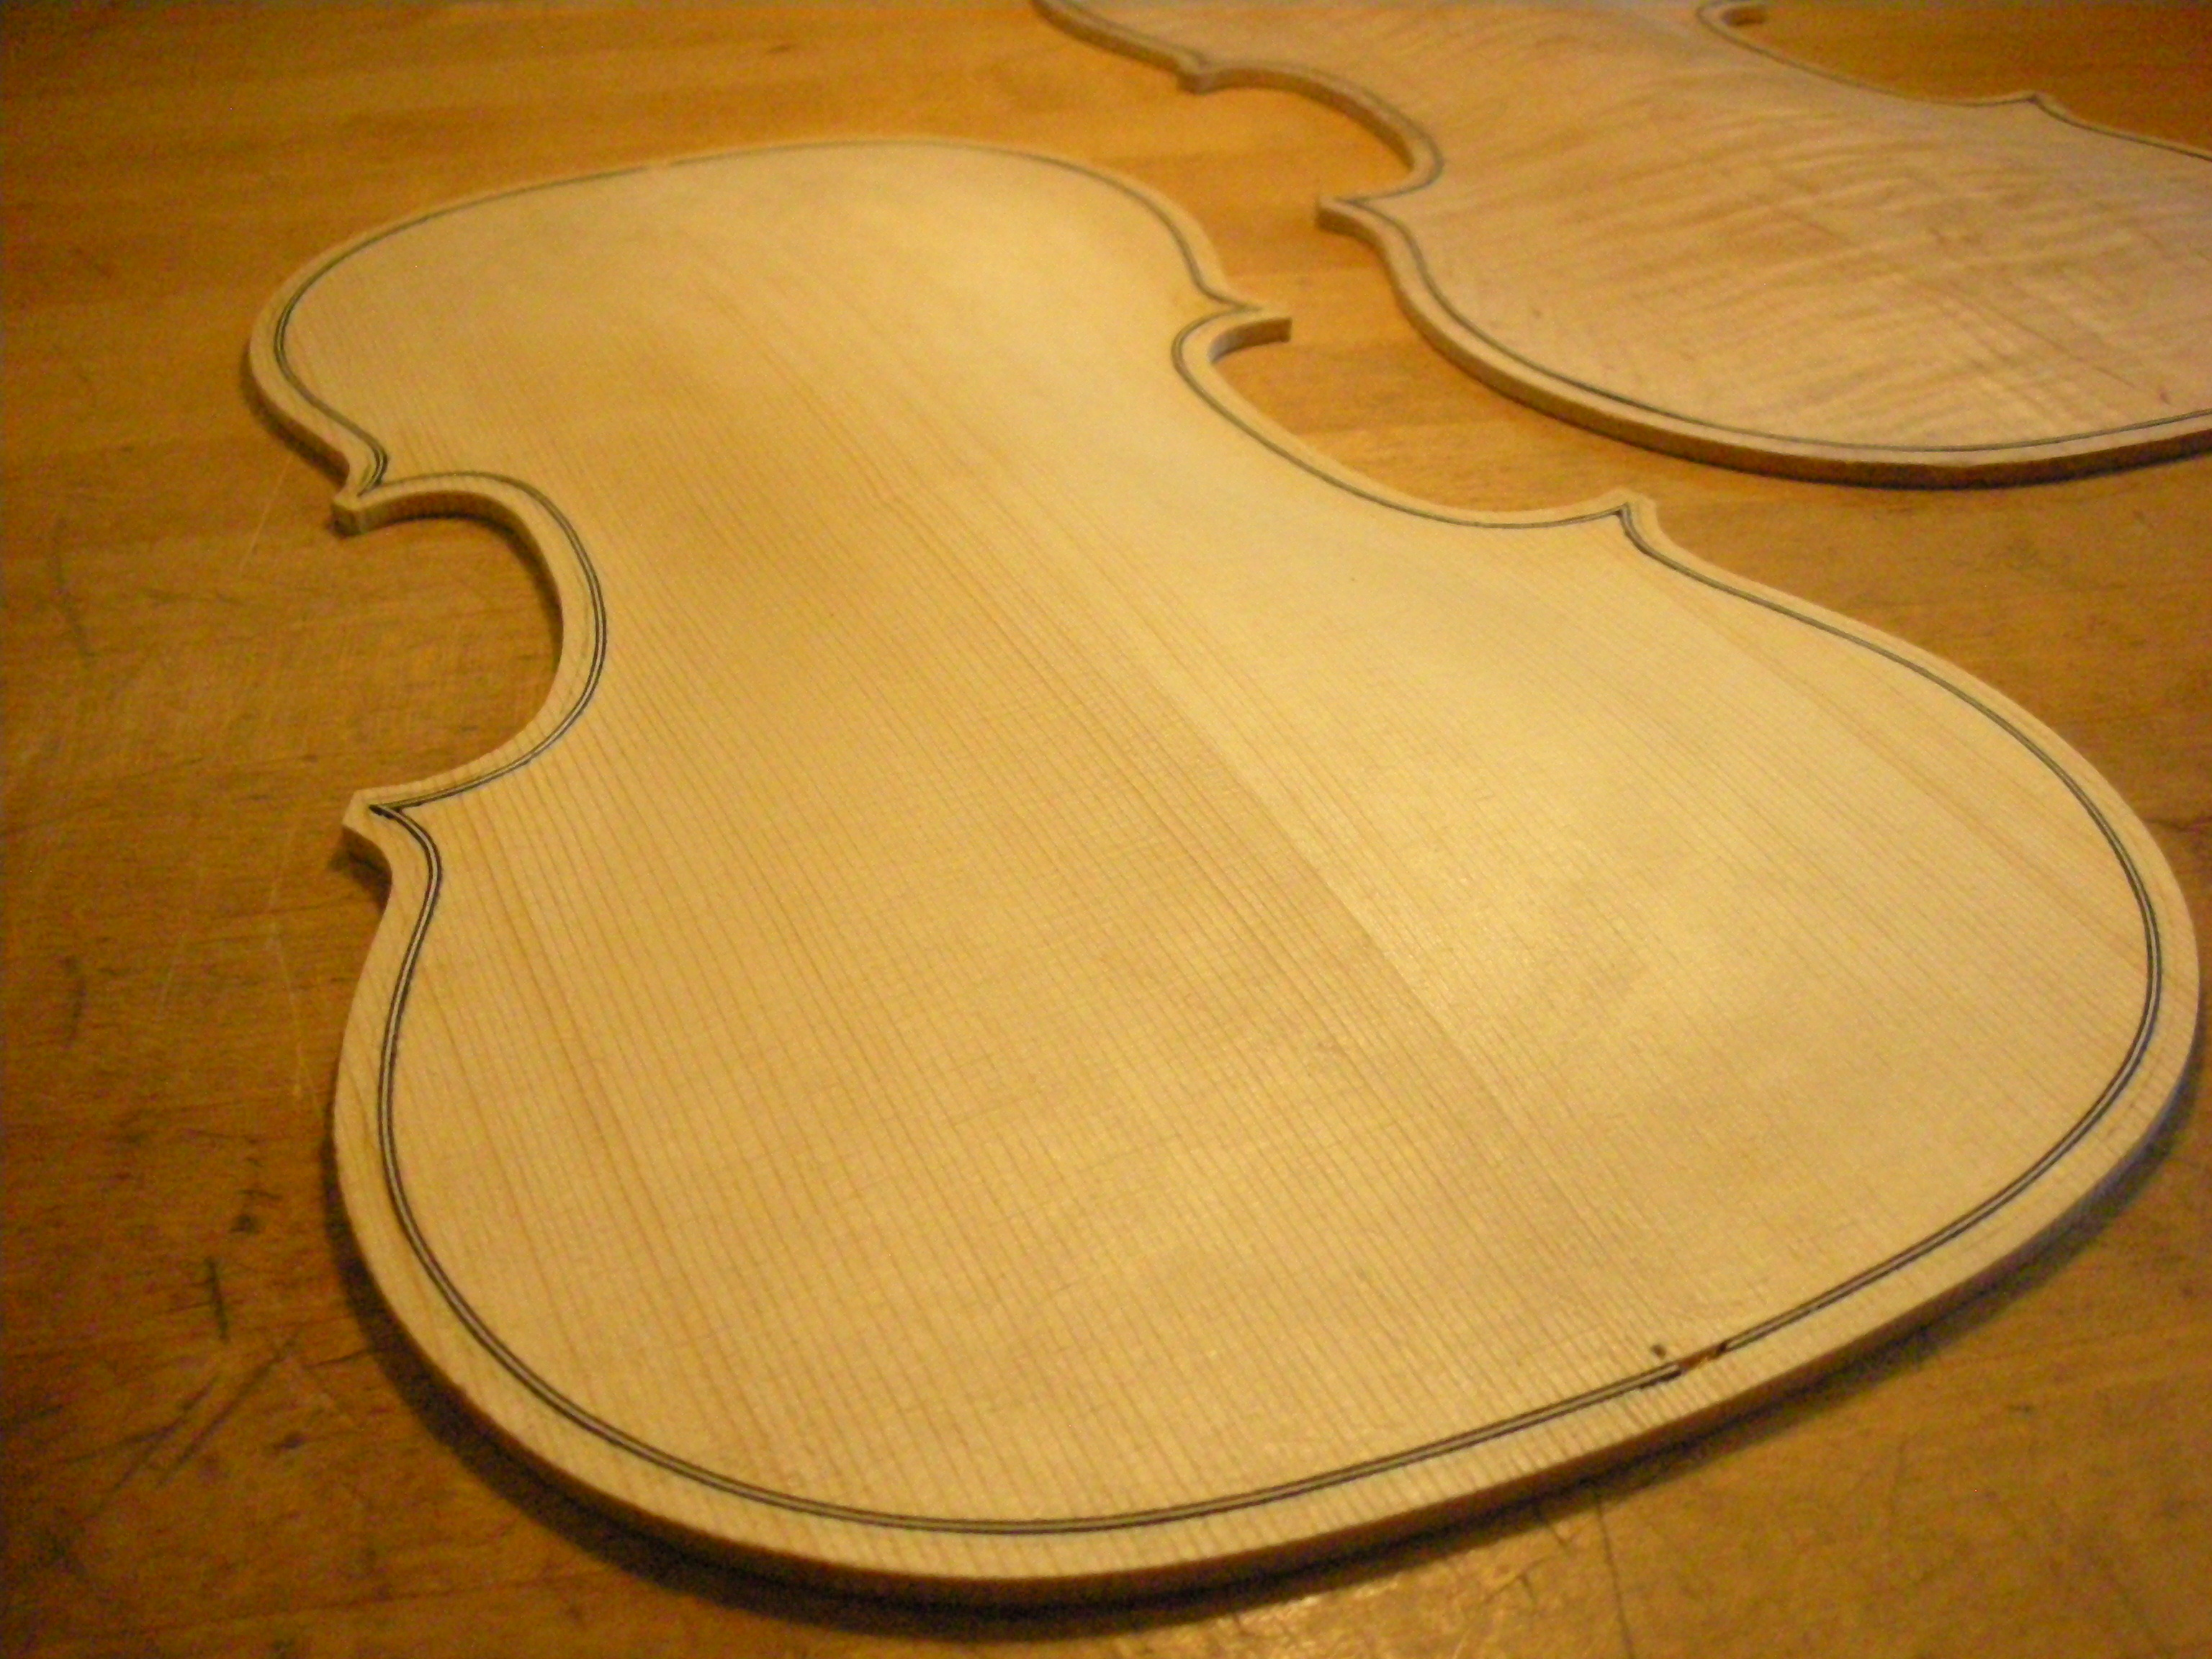 violin top and back with purfling